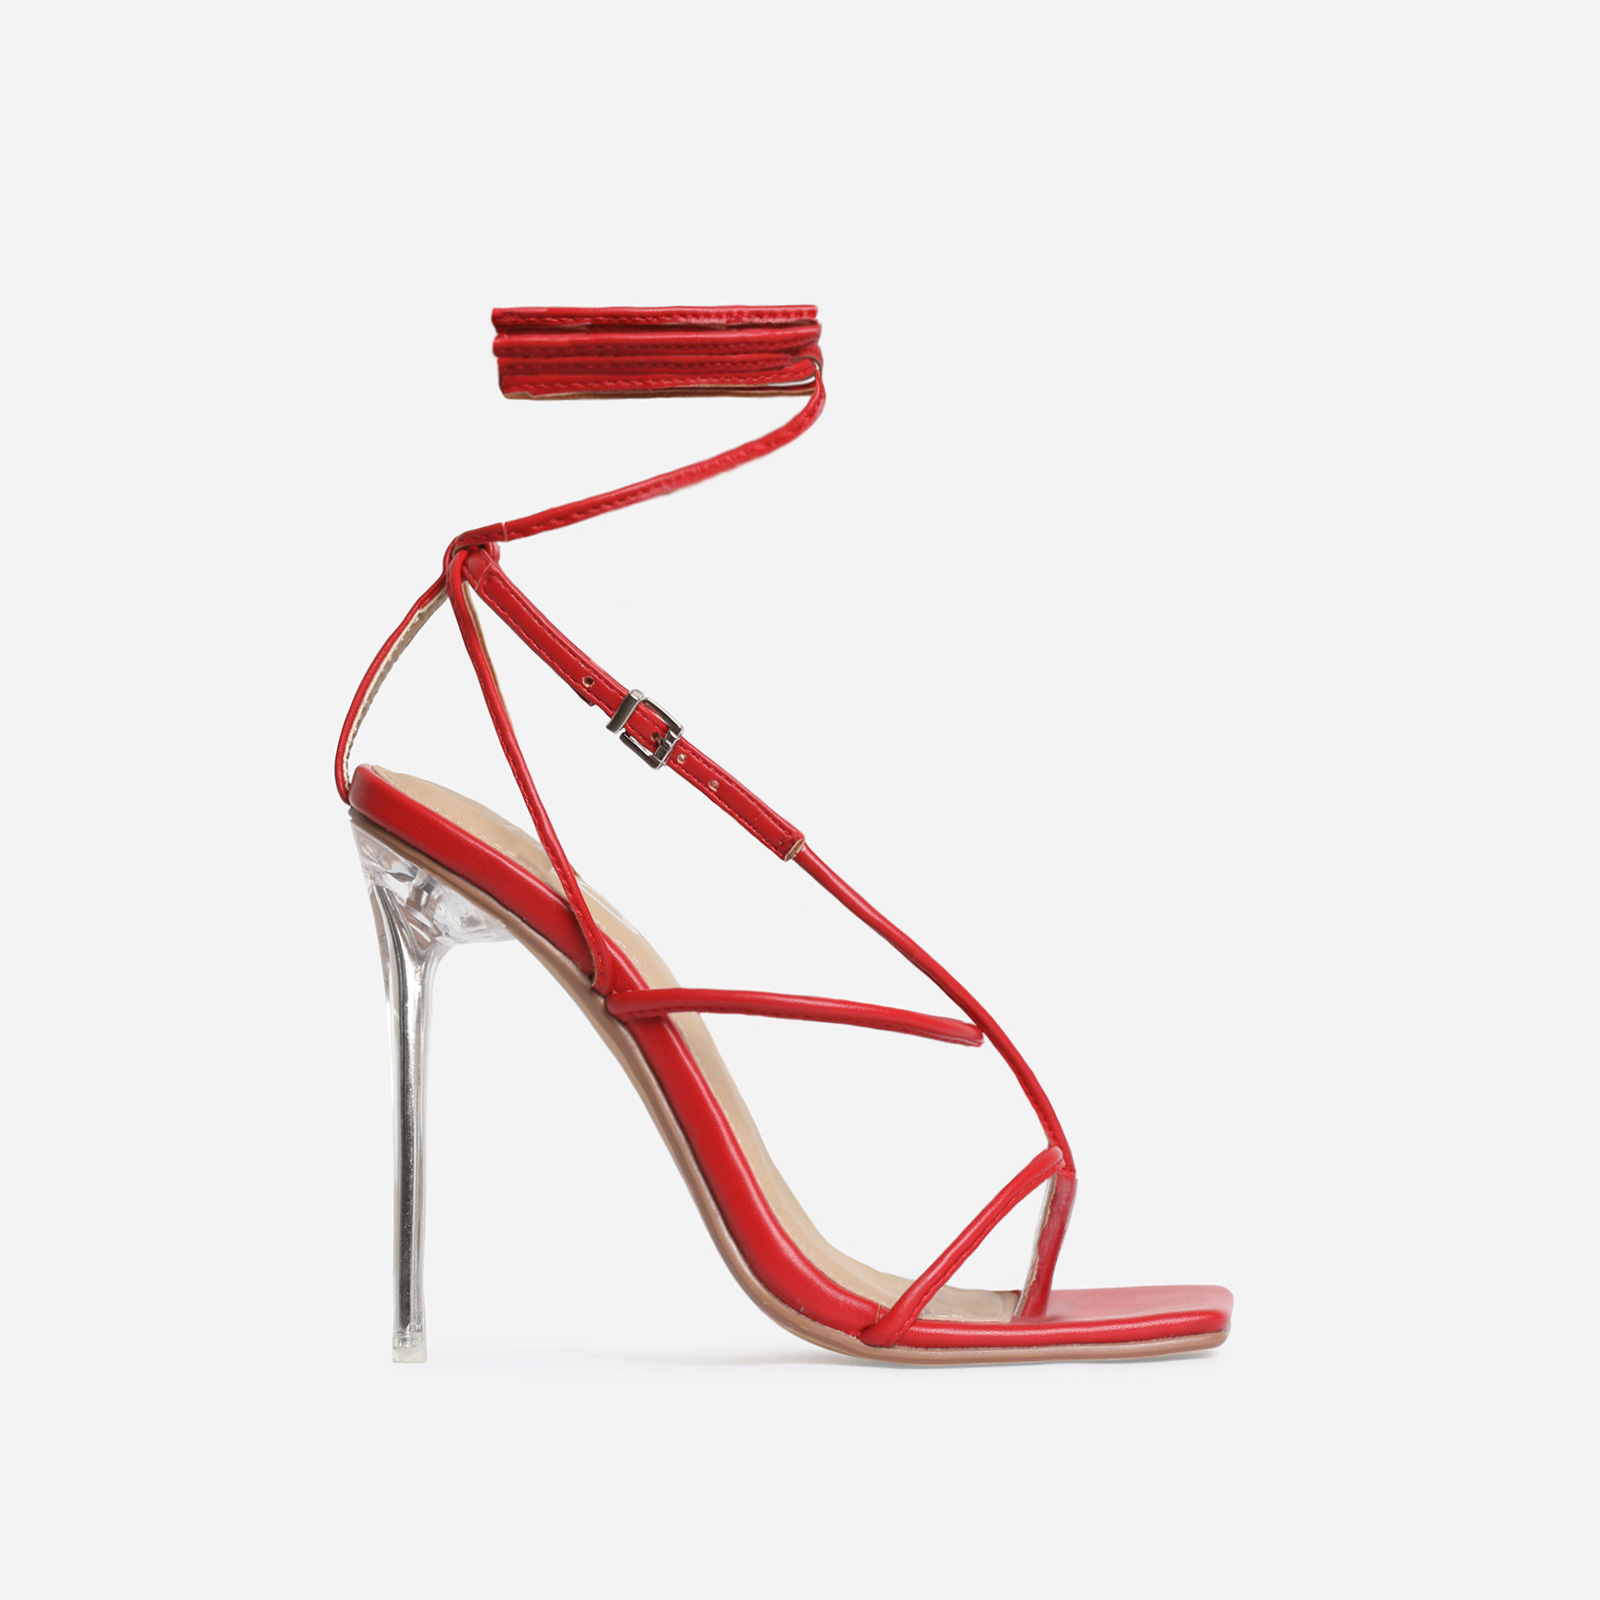 True Square Toe Lace Up Perspex Heel In Red Faux Leather